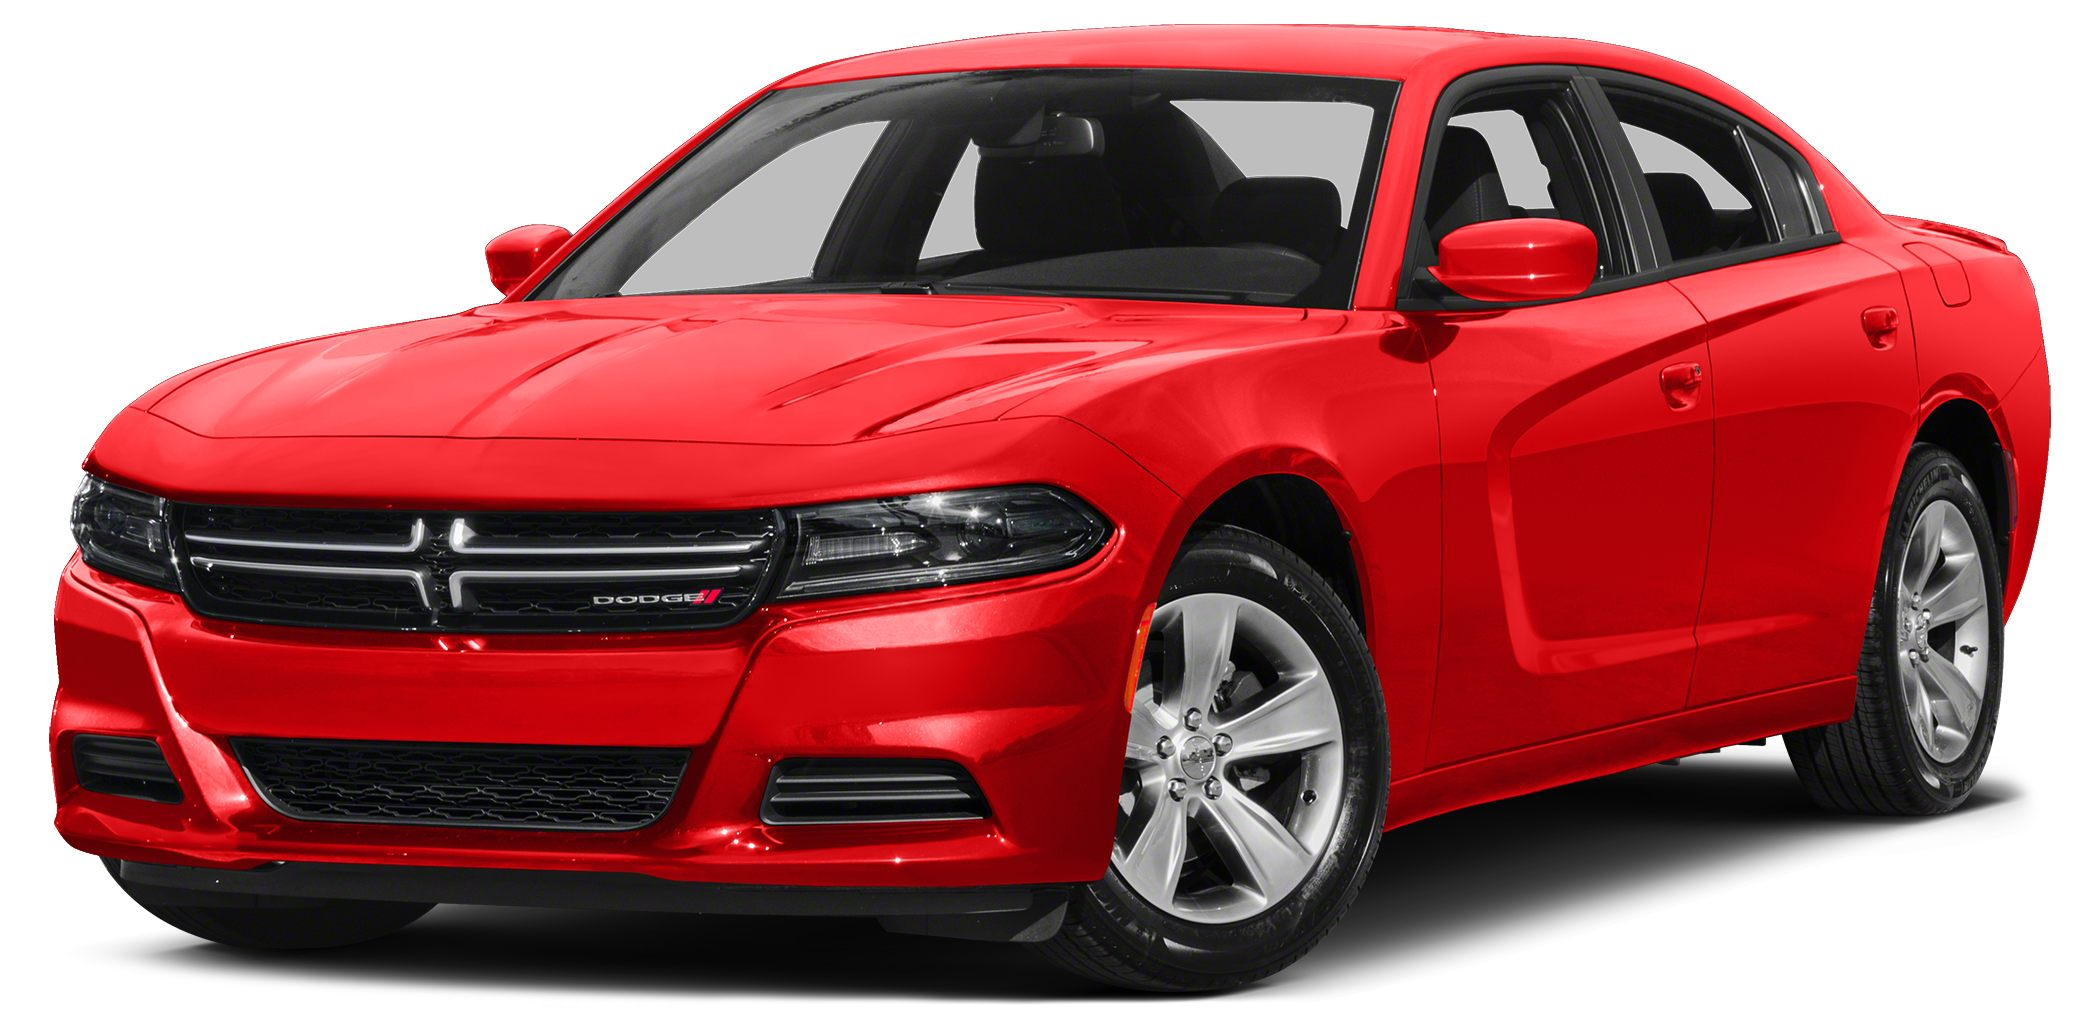 2015 Dodge Charger SE EPA 31 MPG Hwy19 MPG City SE trim CARFAX 1-Owner LOW MILES - 15645 CD